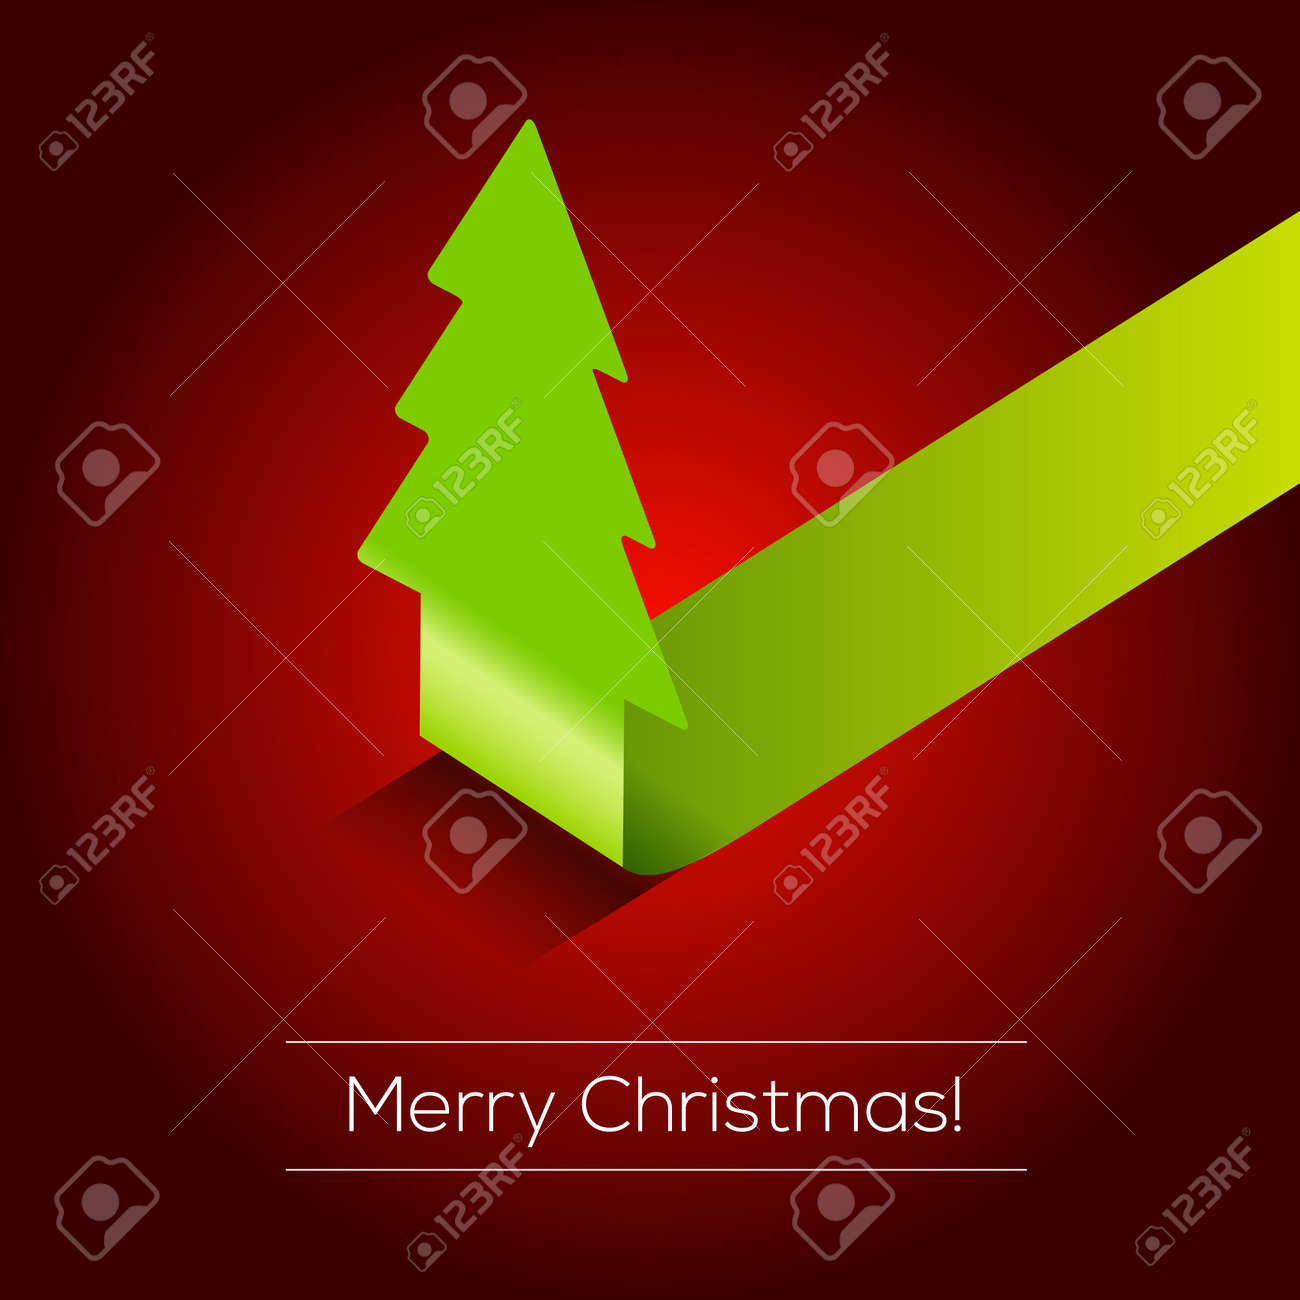 3D Christmas tree  background Stock Vector - 15775486